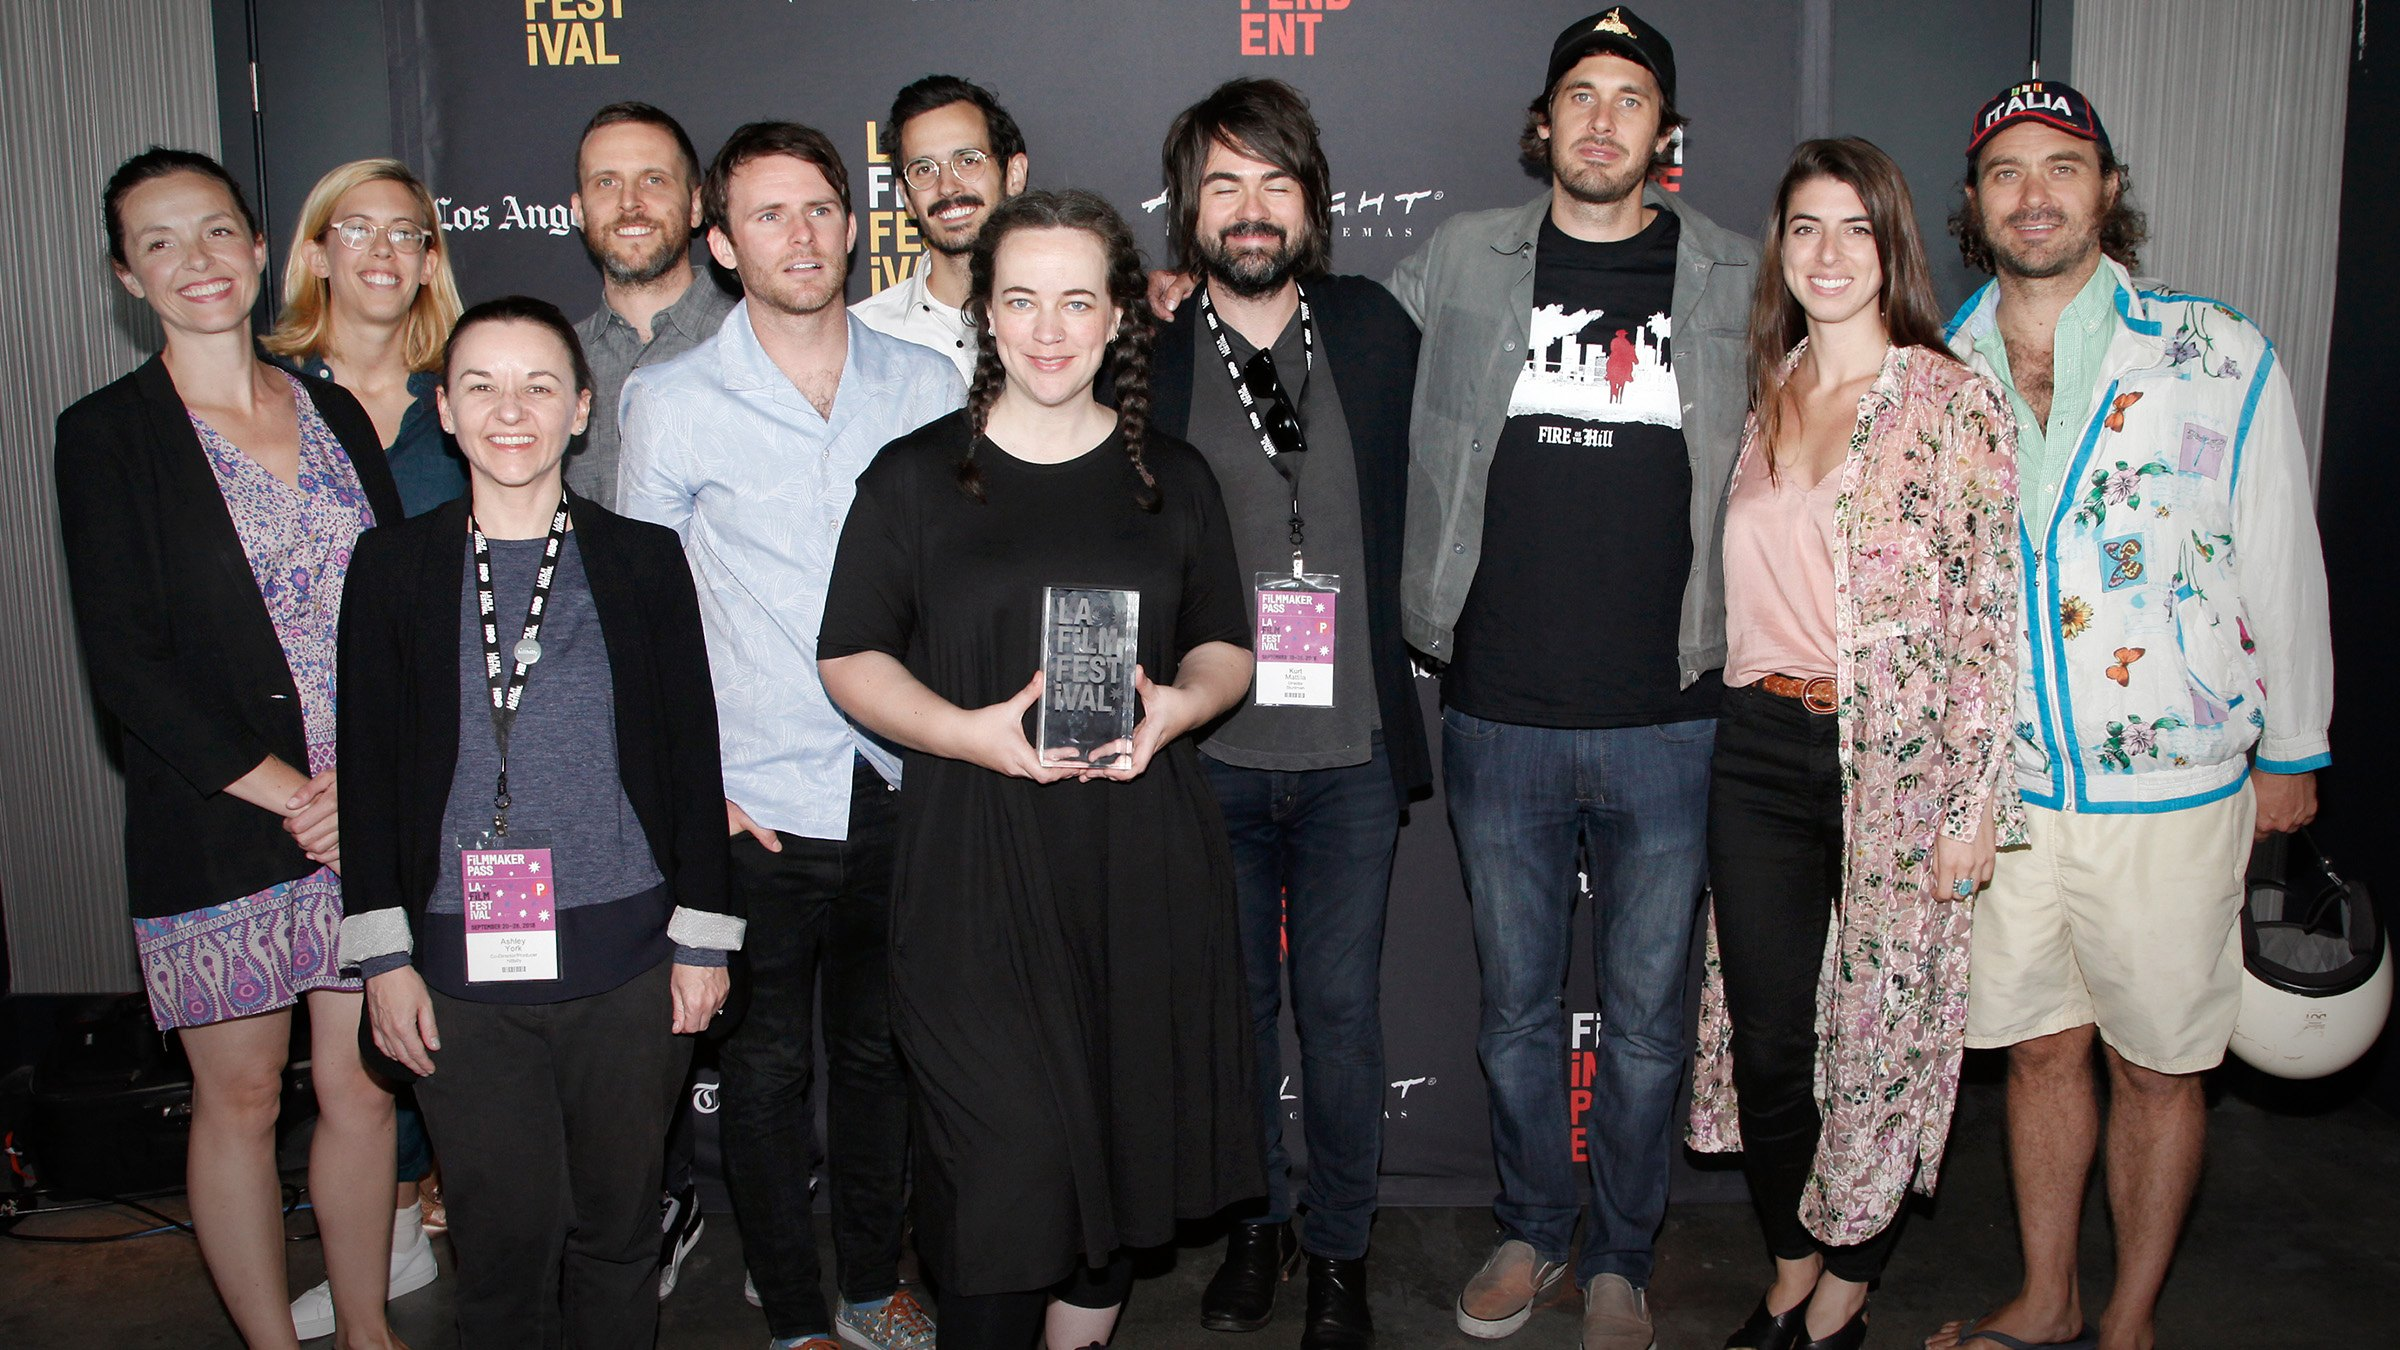 cda3b2b8 Here are the Winners of the 2018 LA Film Festival! - Film Independent